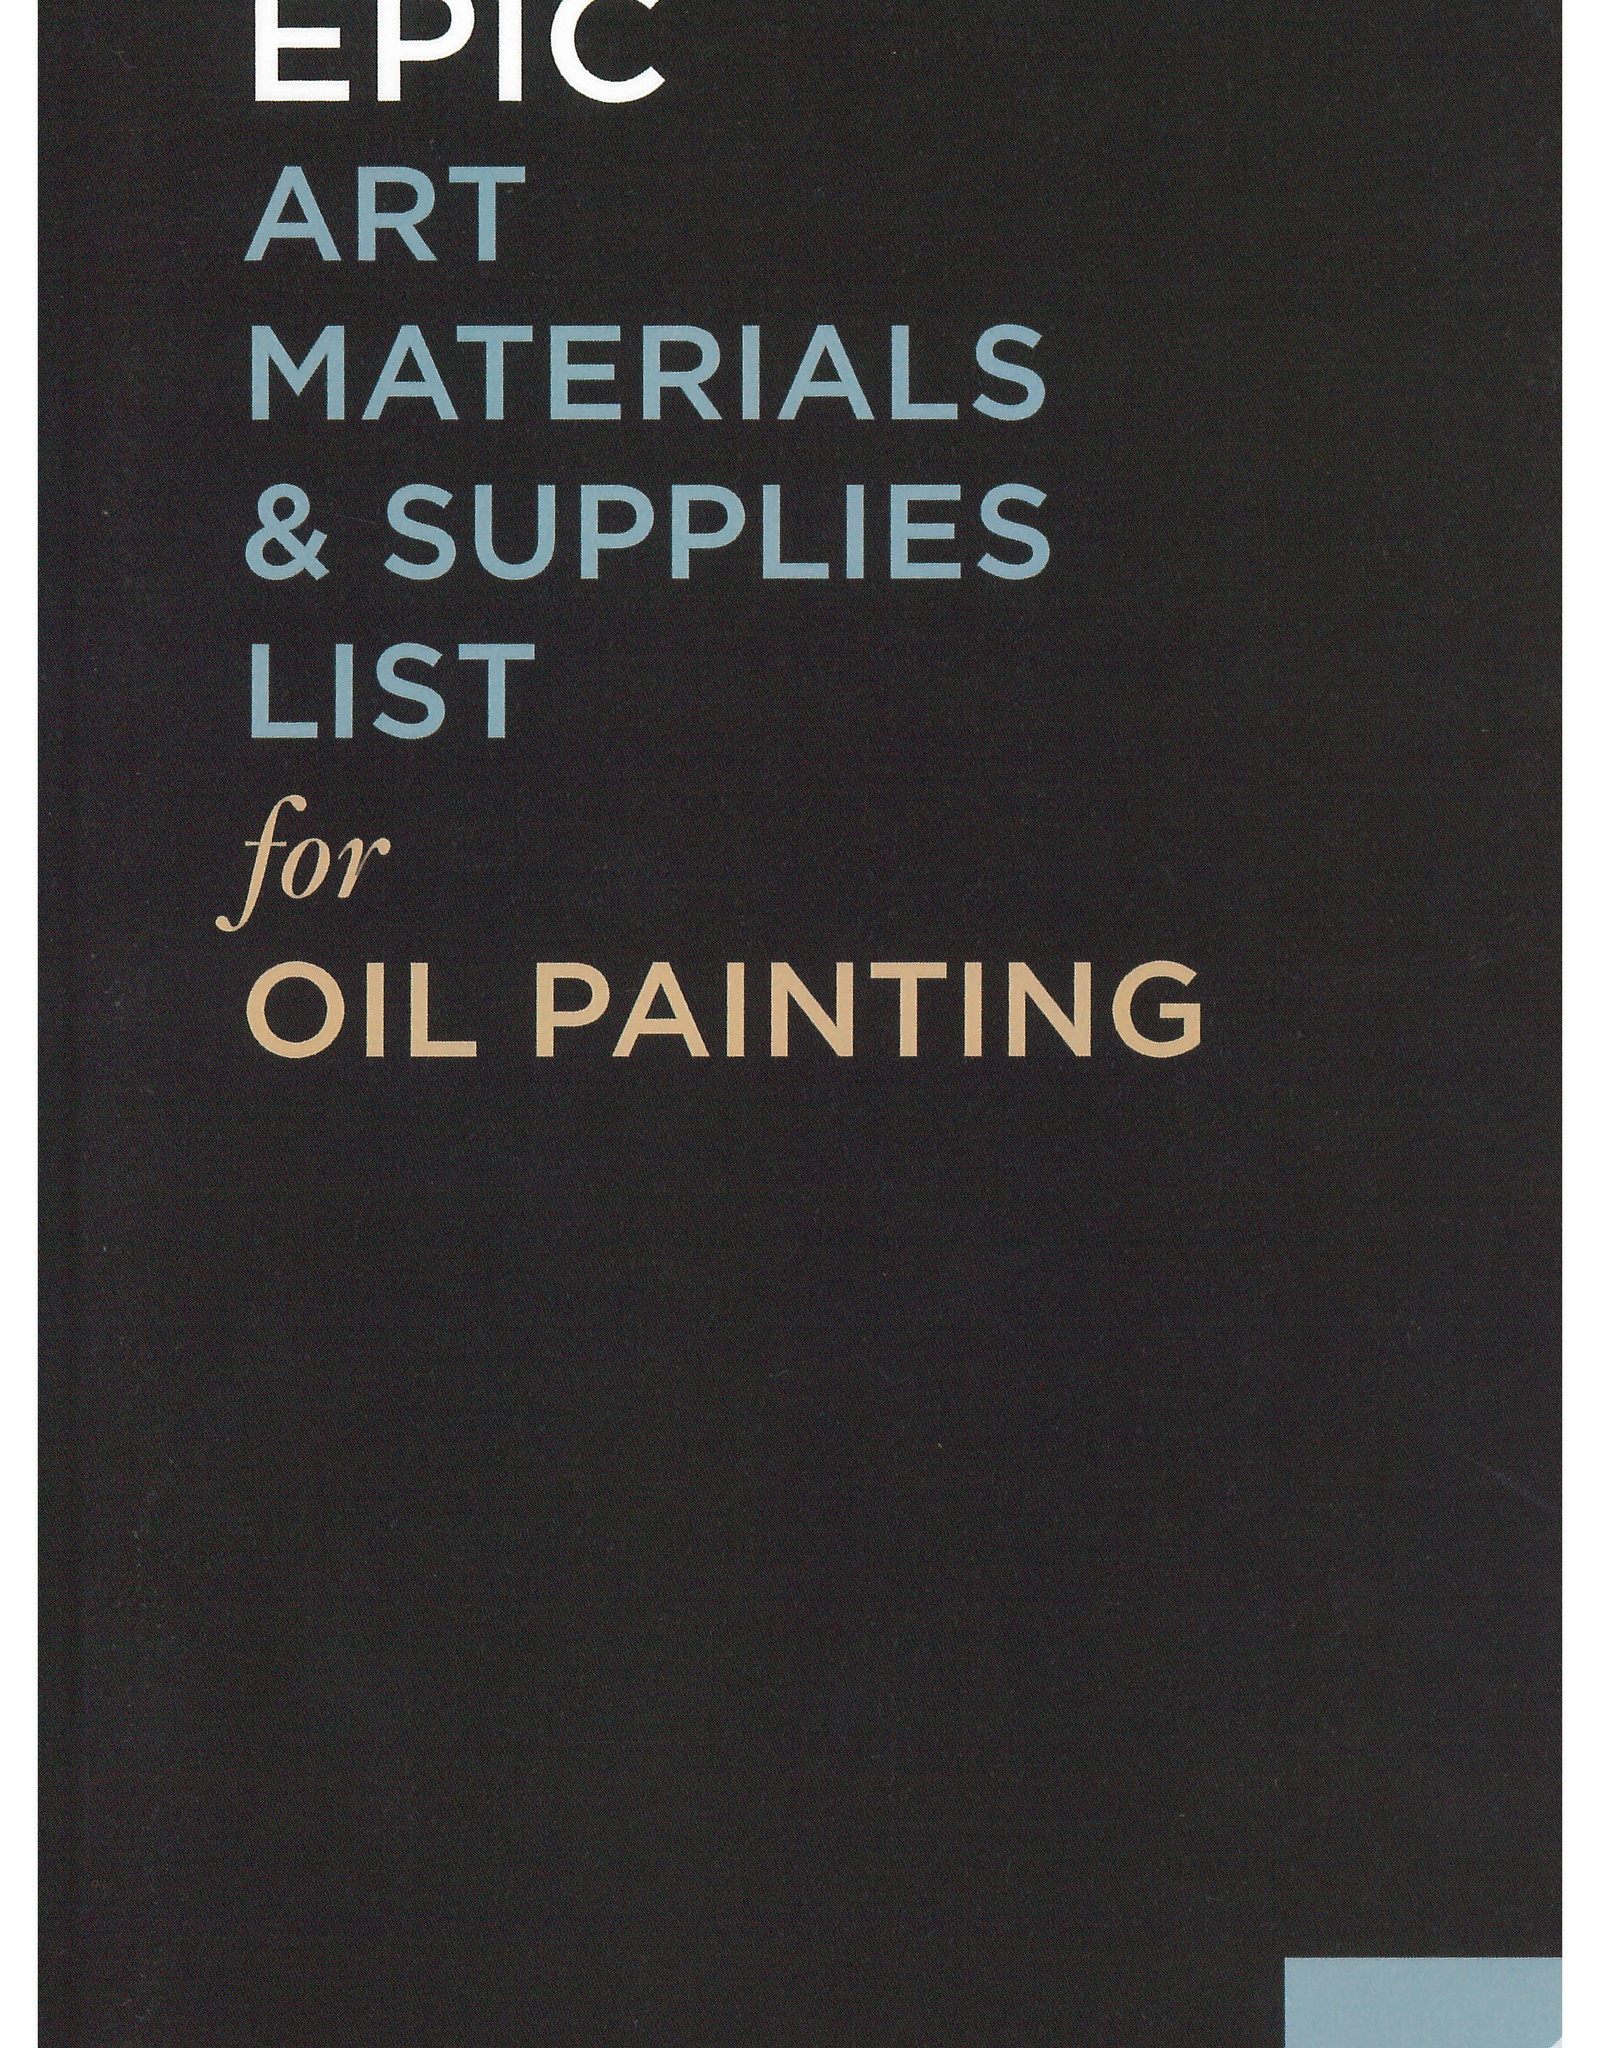 Epic: Art Materials & Supplies List for Oil Painting / Kimberly Brooks